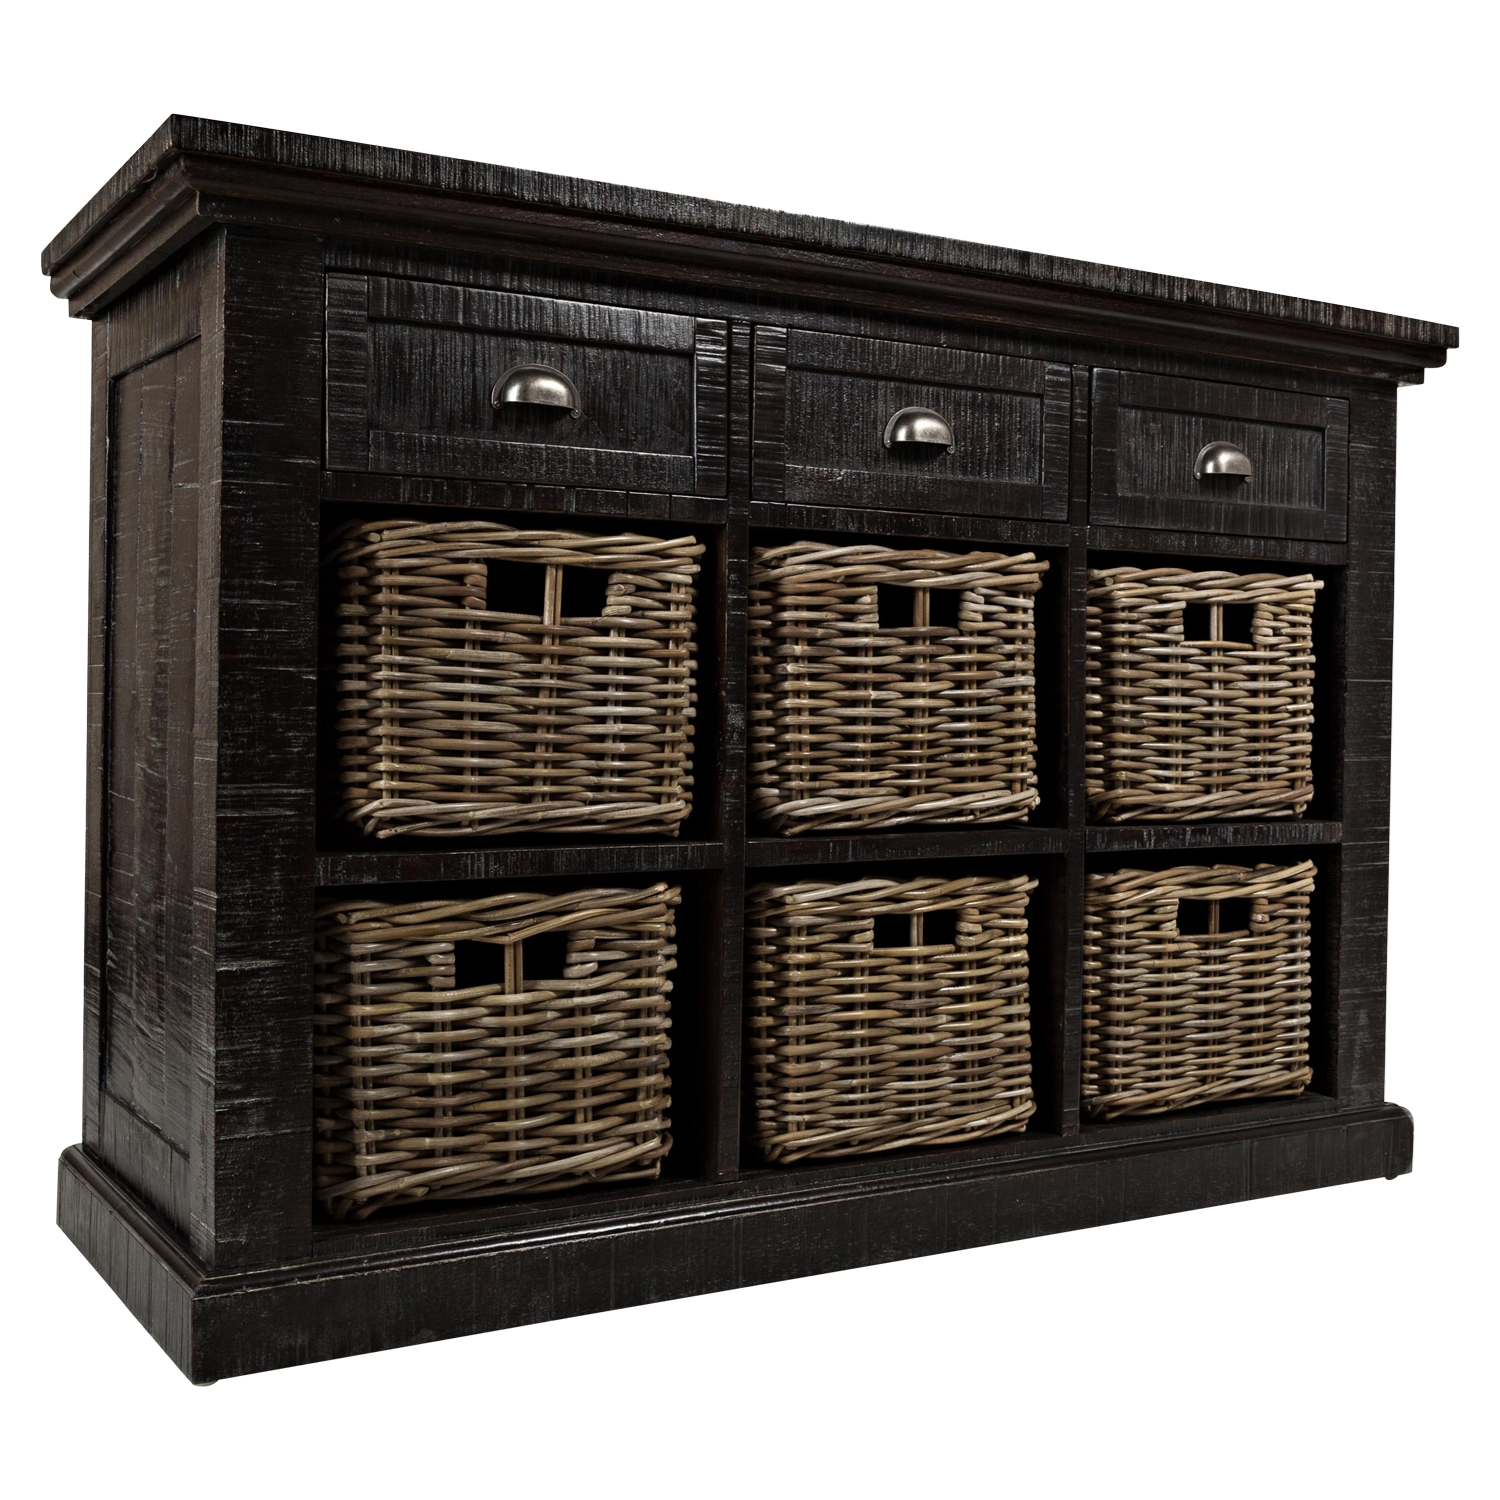 Natural Origins Large Accent Chest - Wellfleet Weathered Gray - JOFR-1575-49